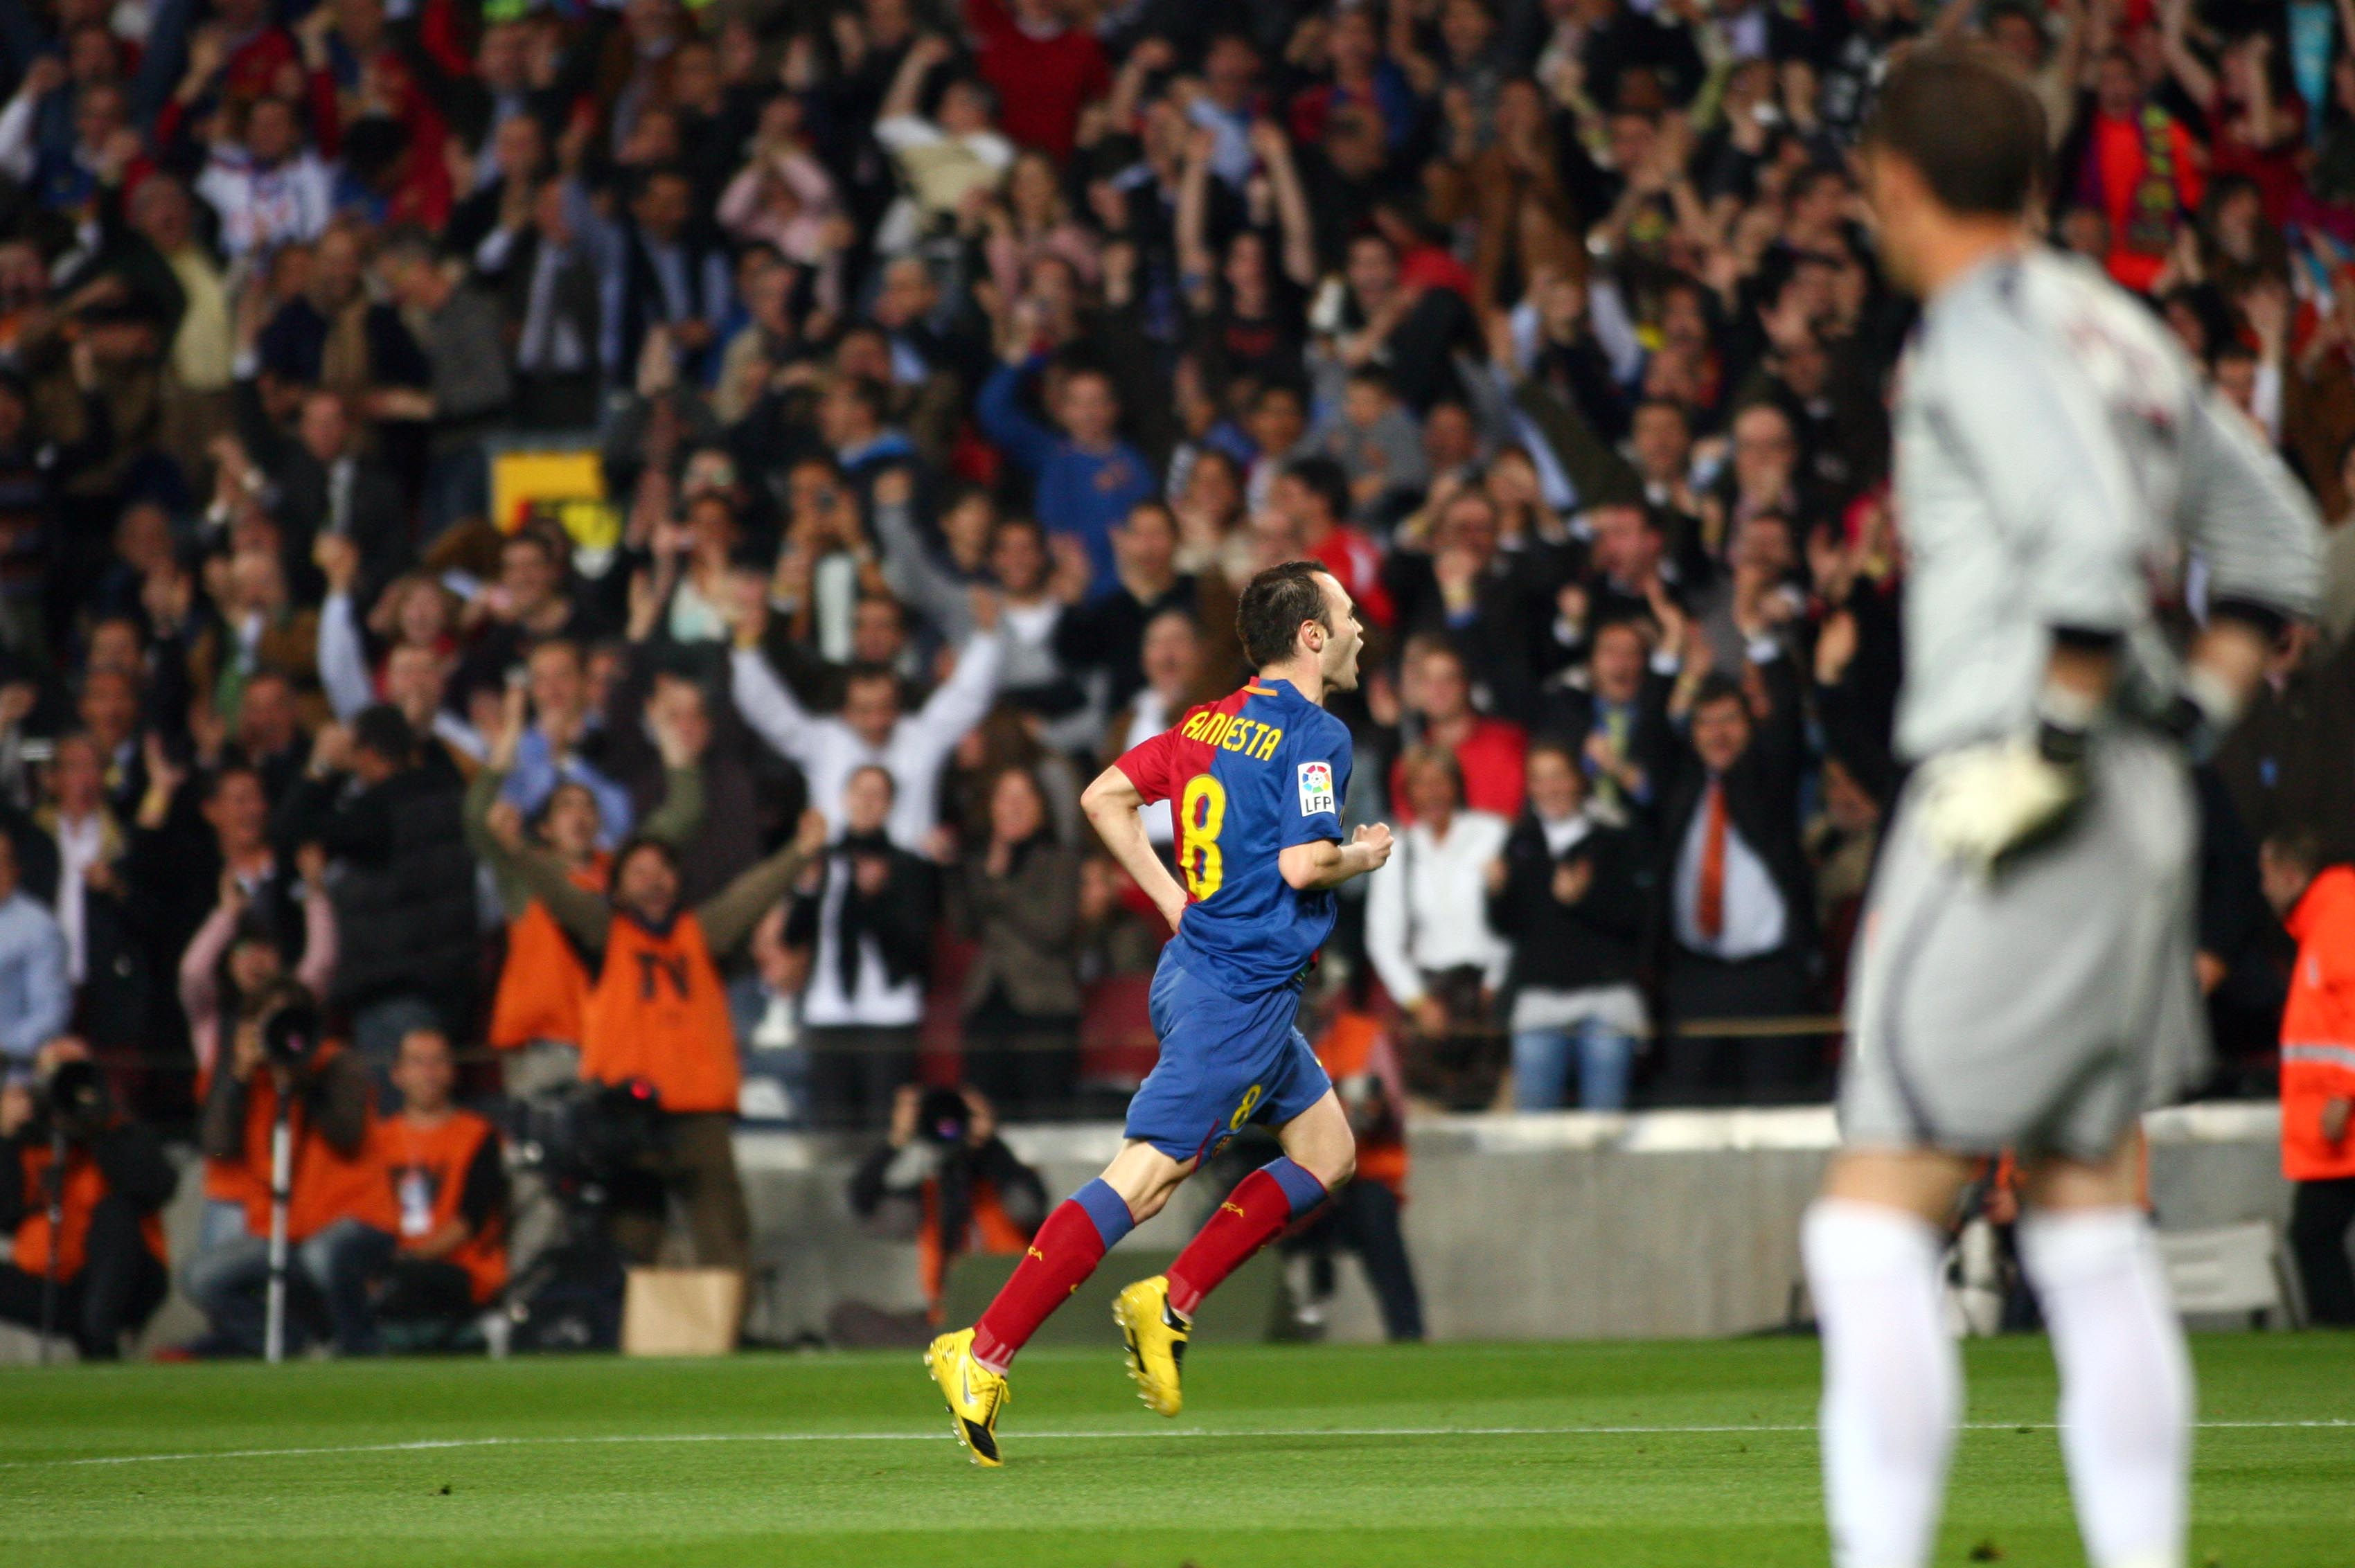 Iniesta celebrating against Sevilla